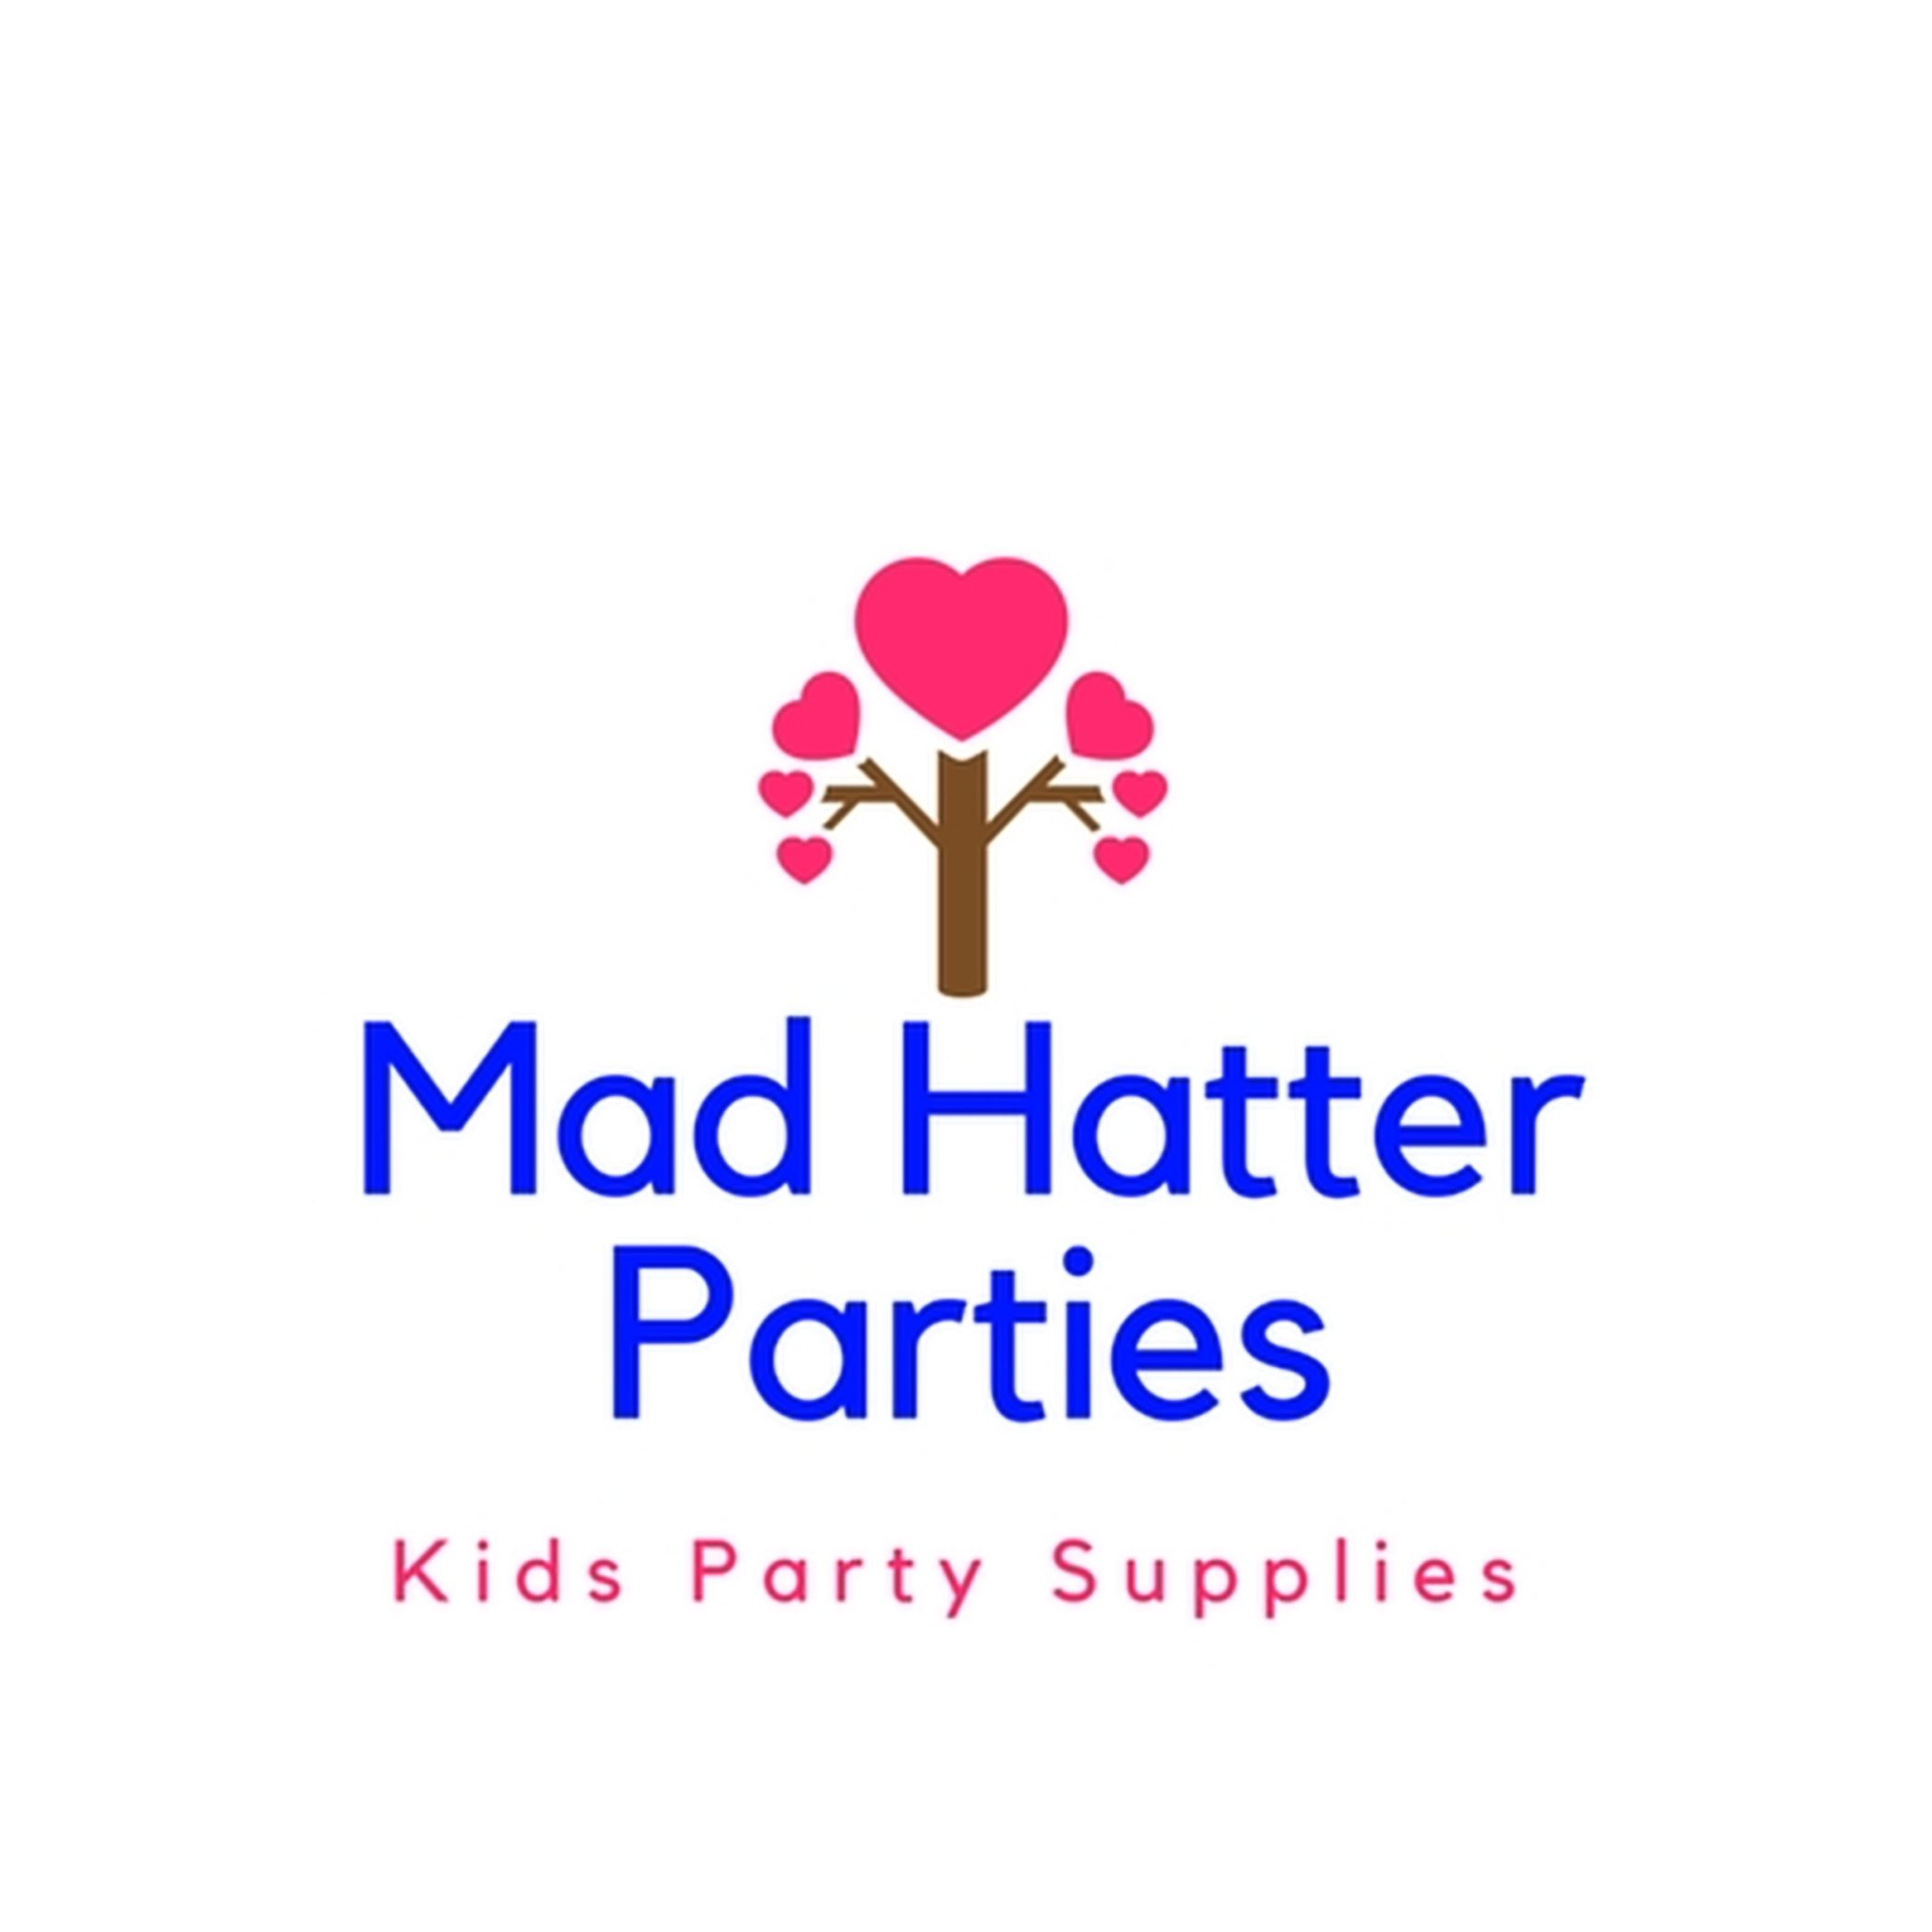 Mad Hatter Parties